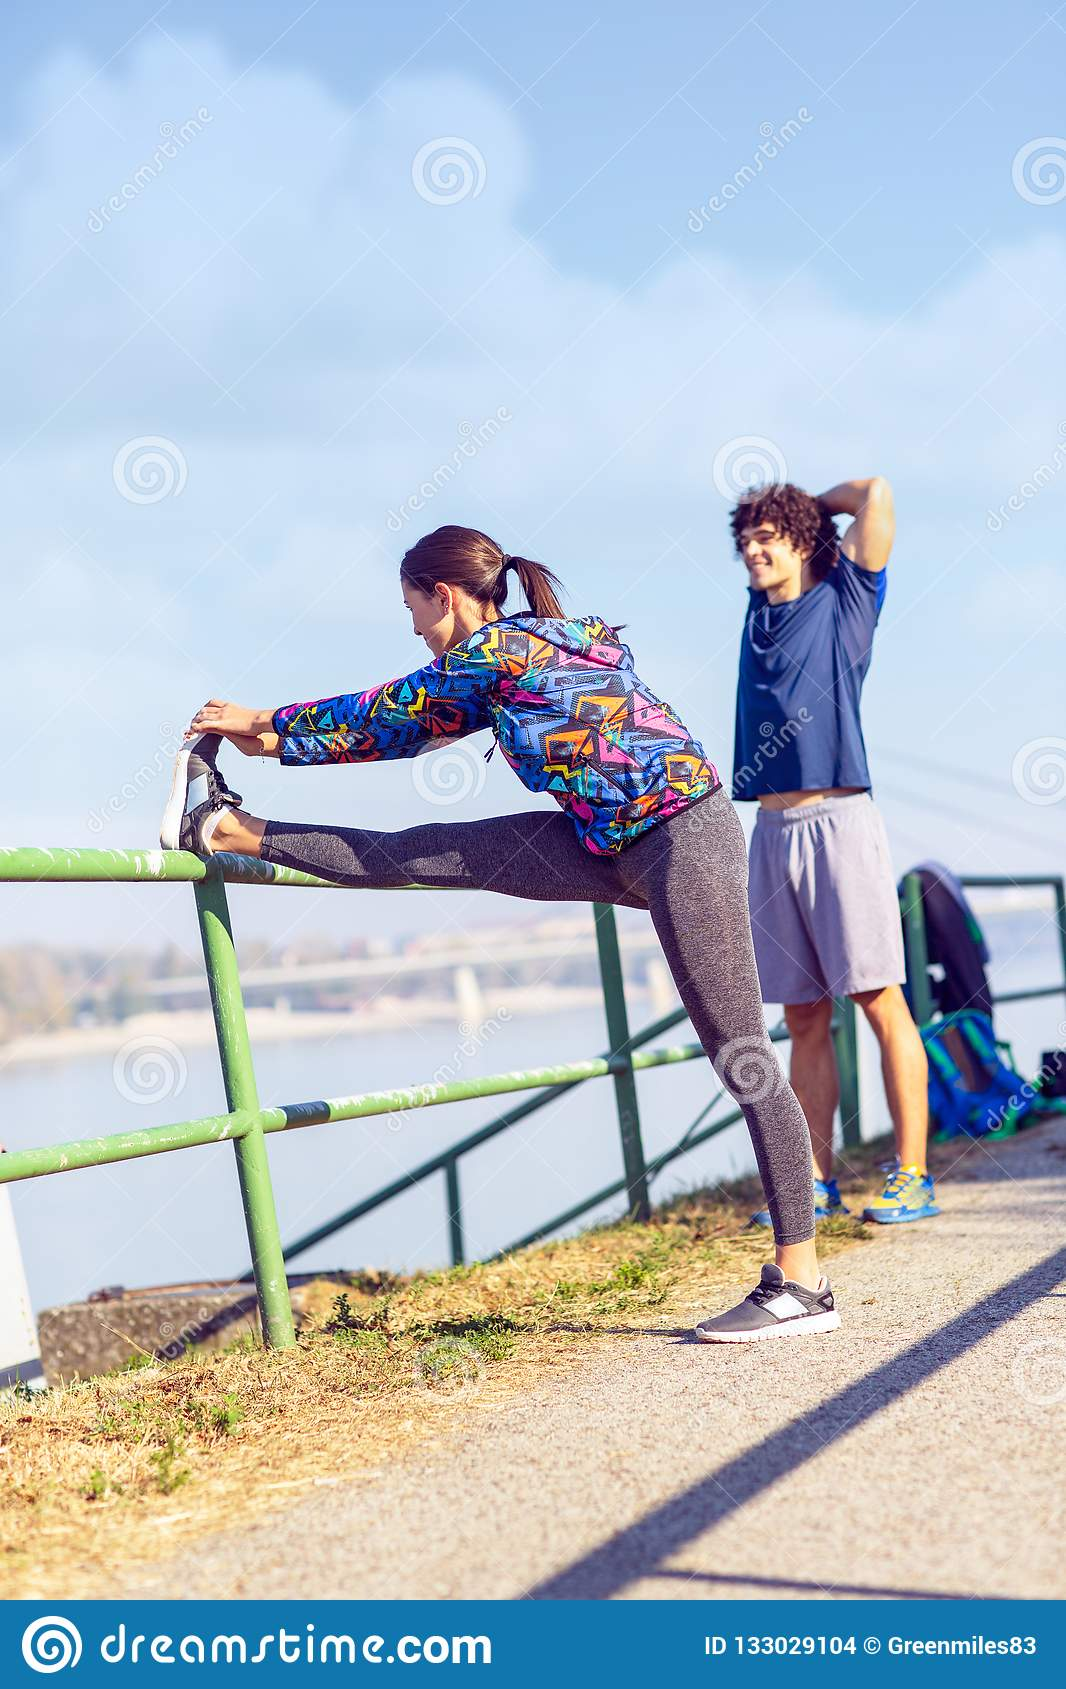 couple stretching outdoors - fitness, sport, training and lifestyle concept .